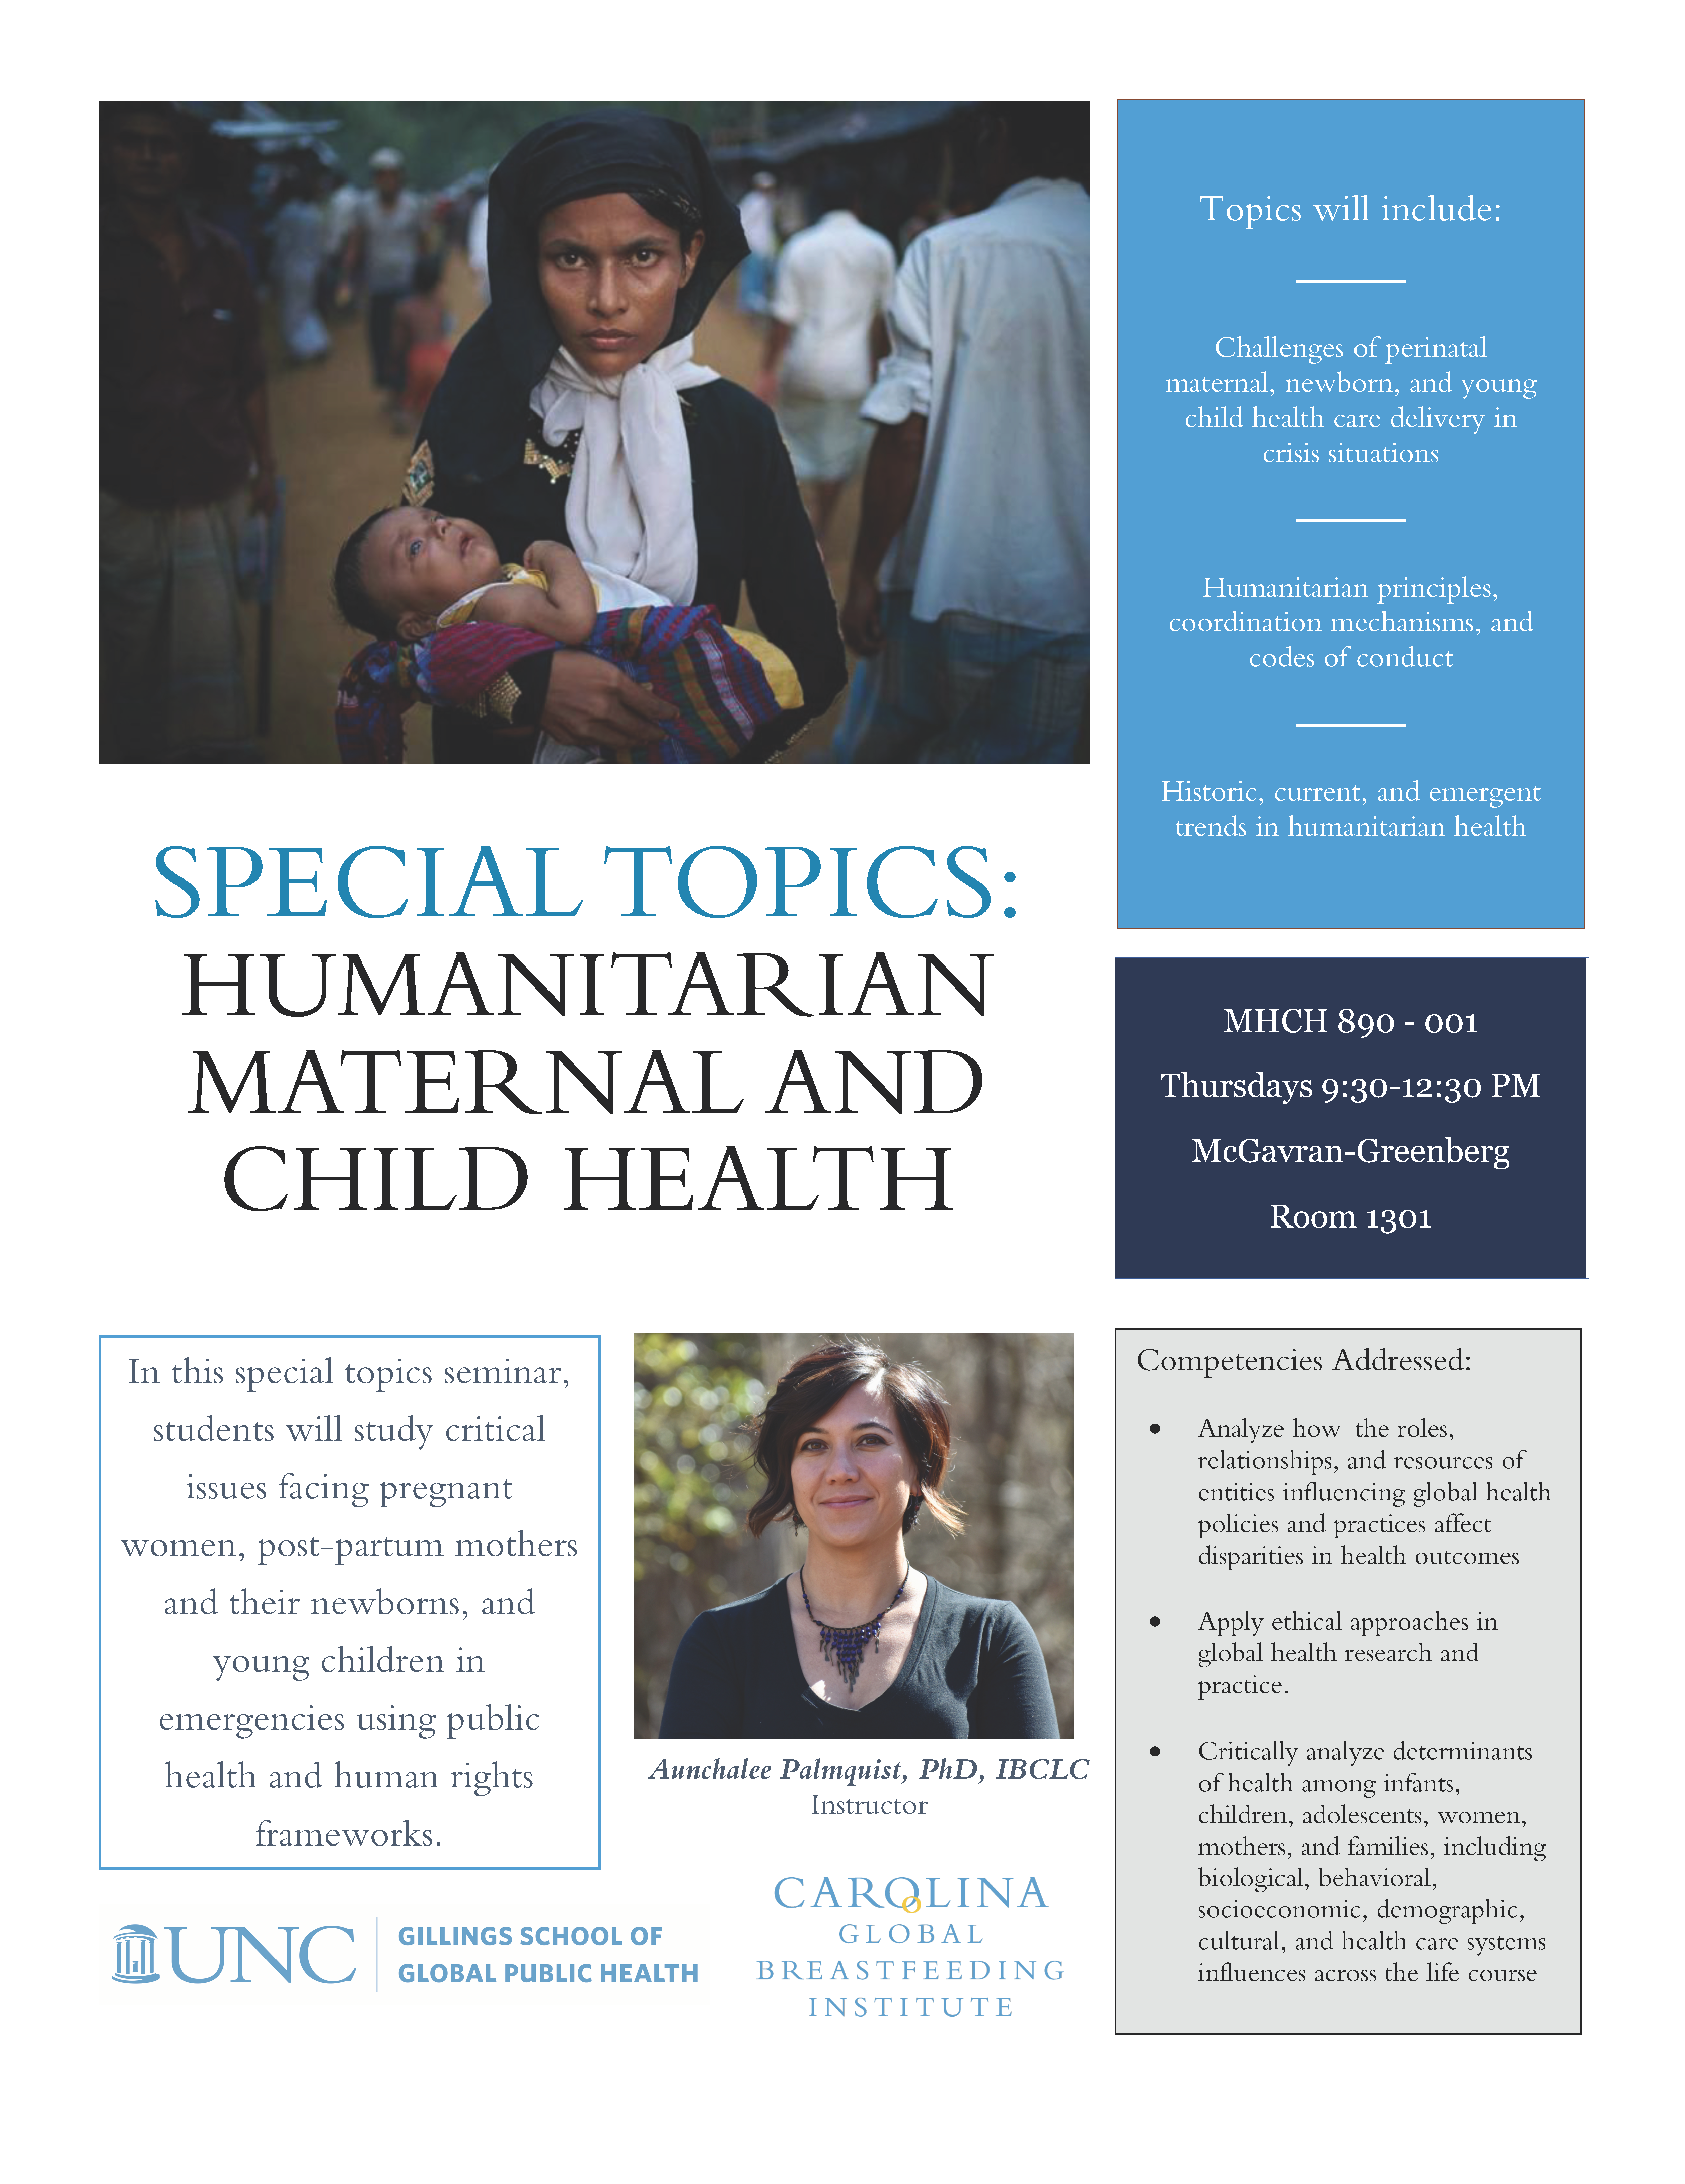 Special Topics: Humanitarian Maternal and Child Health Course Flyer